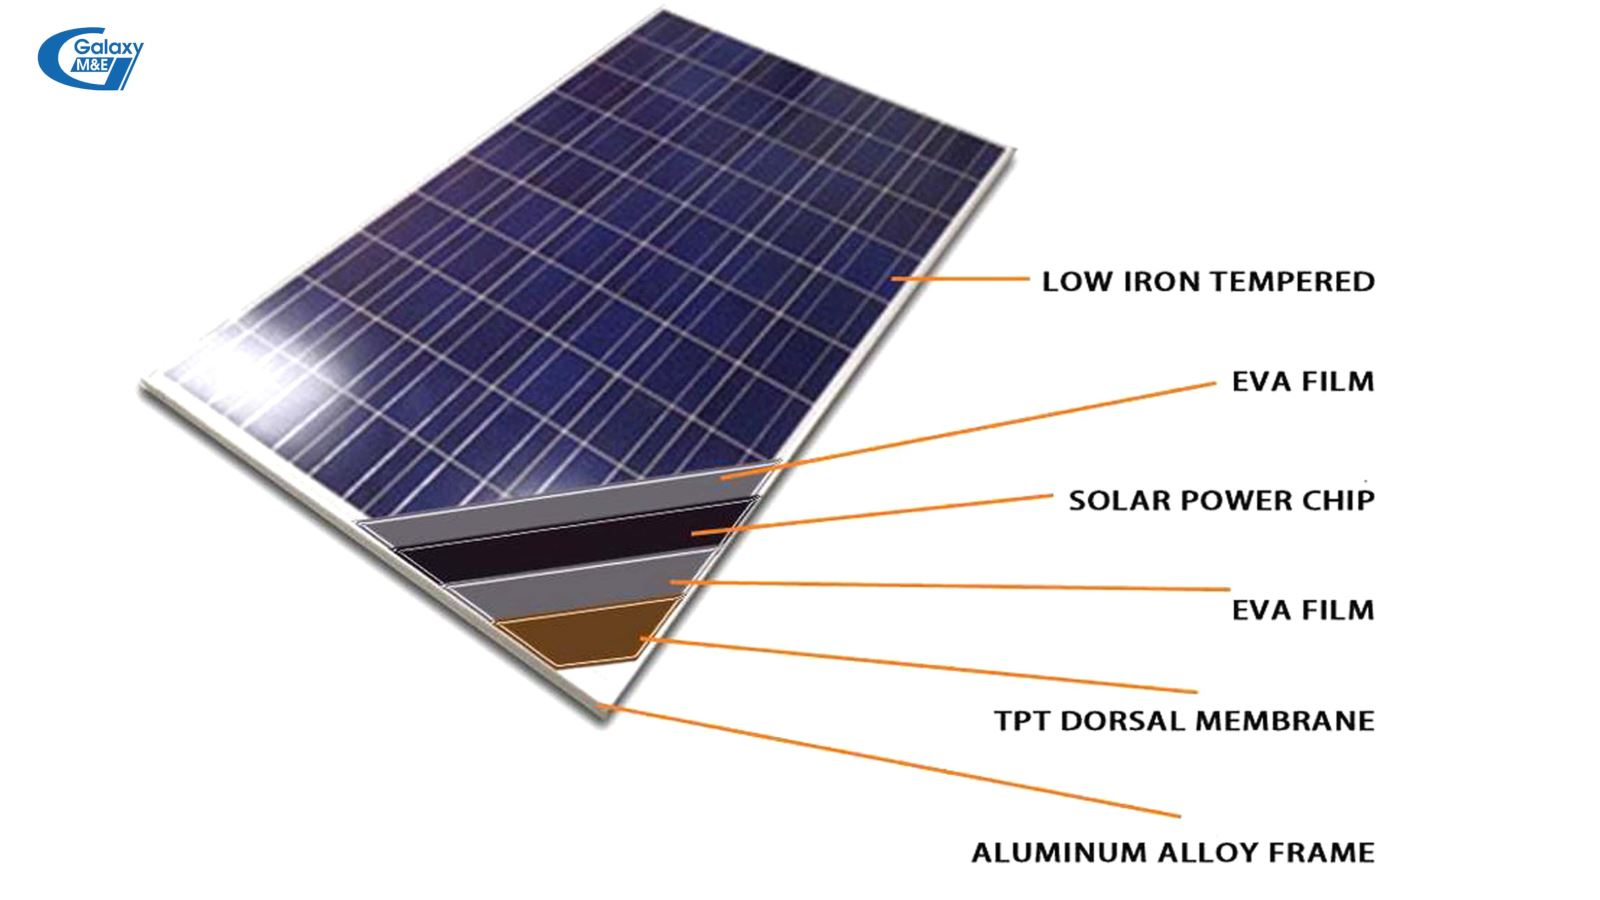 Solar cells are structured in turn from the outside to the inside: thin metal surface, transparent film, electronic chip, film, back film, aluminum alloy frame.